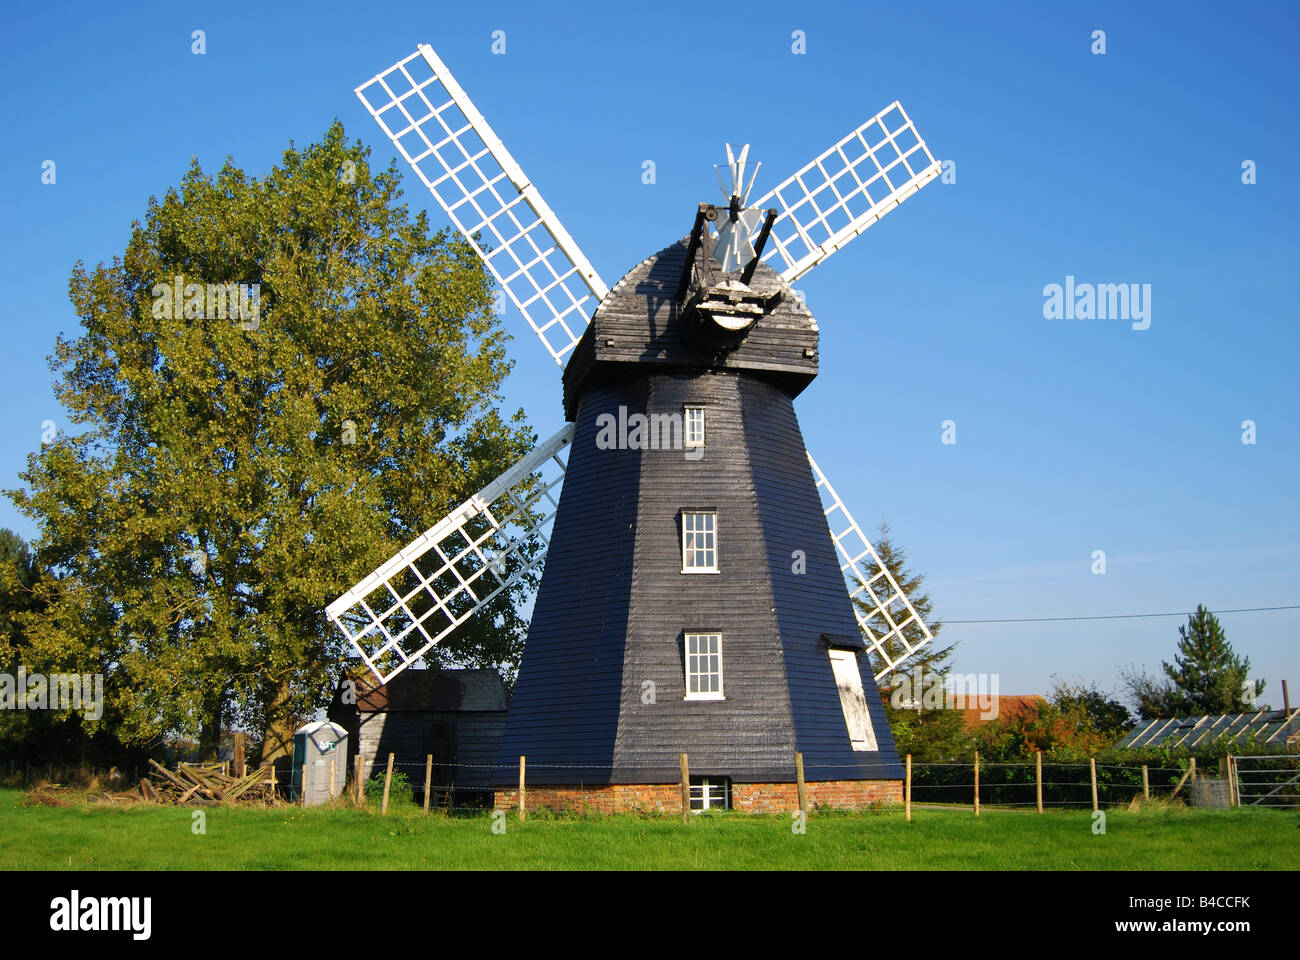 Lacey Green Windmill, Lacey Green, Buckinghamshire, England, United Kingdom - Stock Image